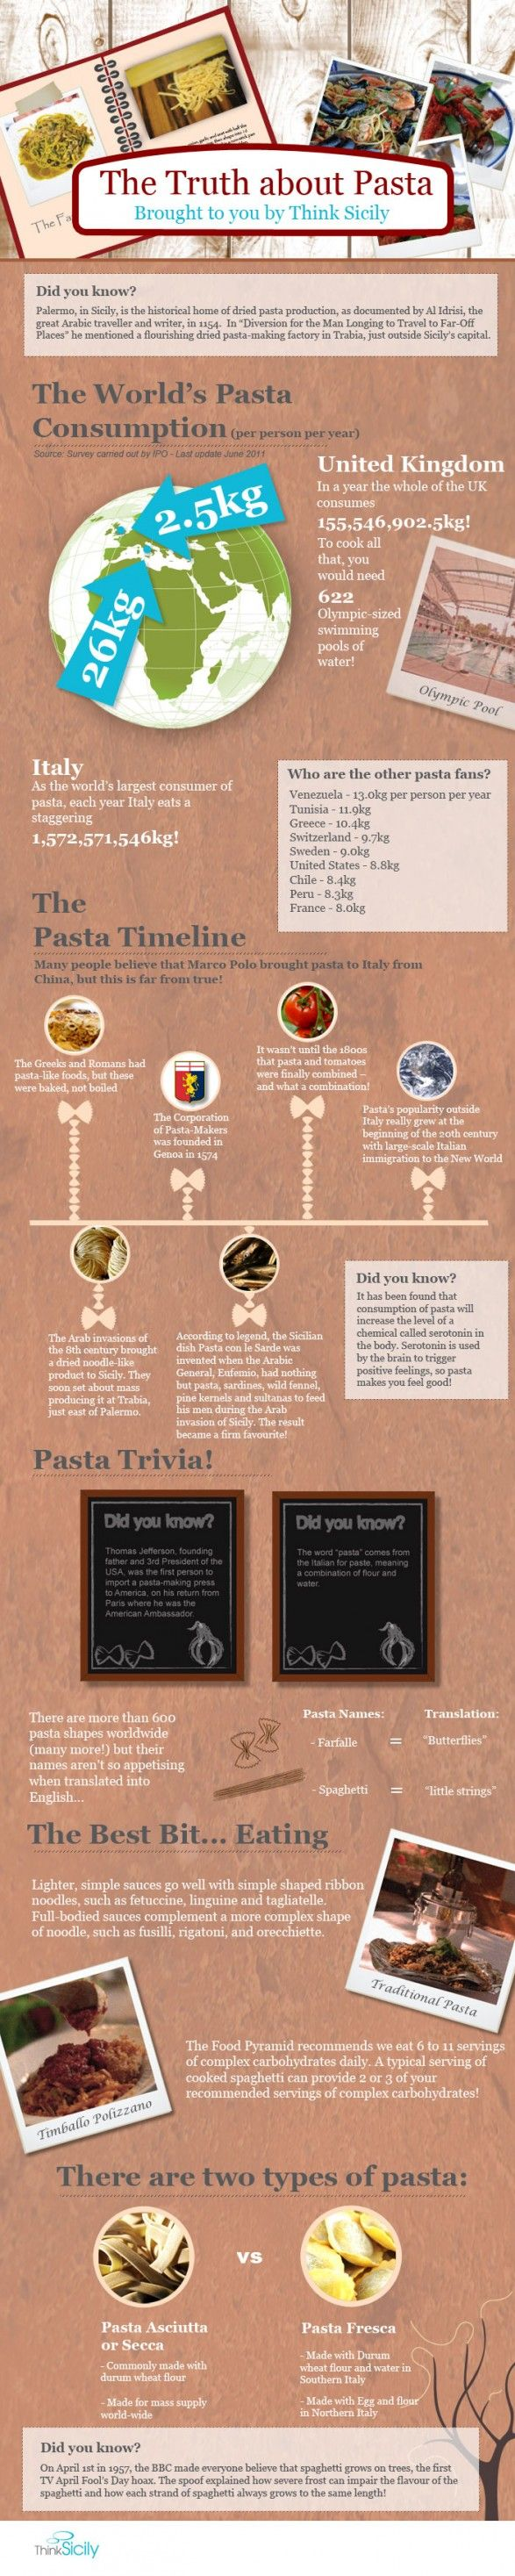 The Truth About Pasta 15 best Pizza